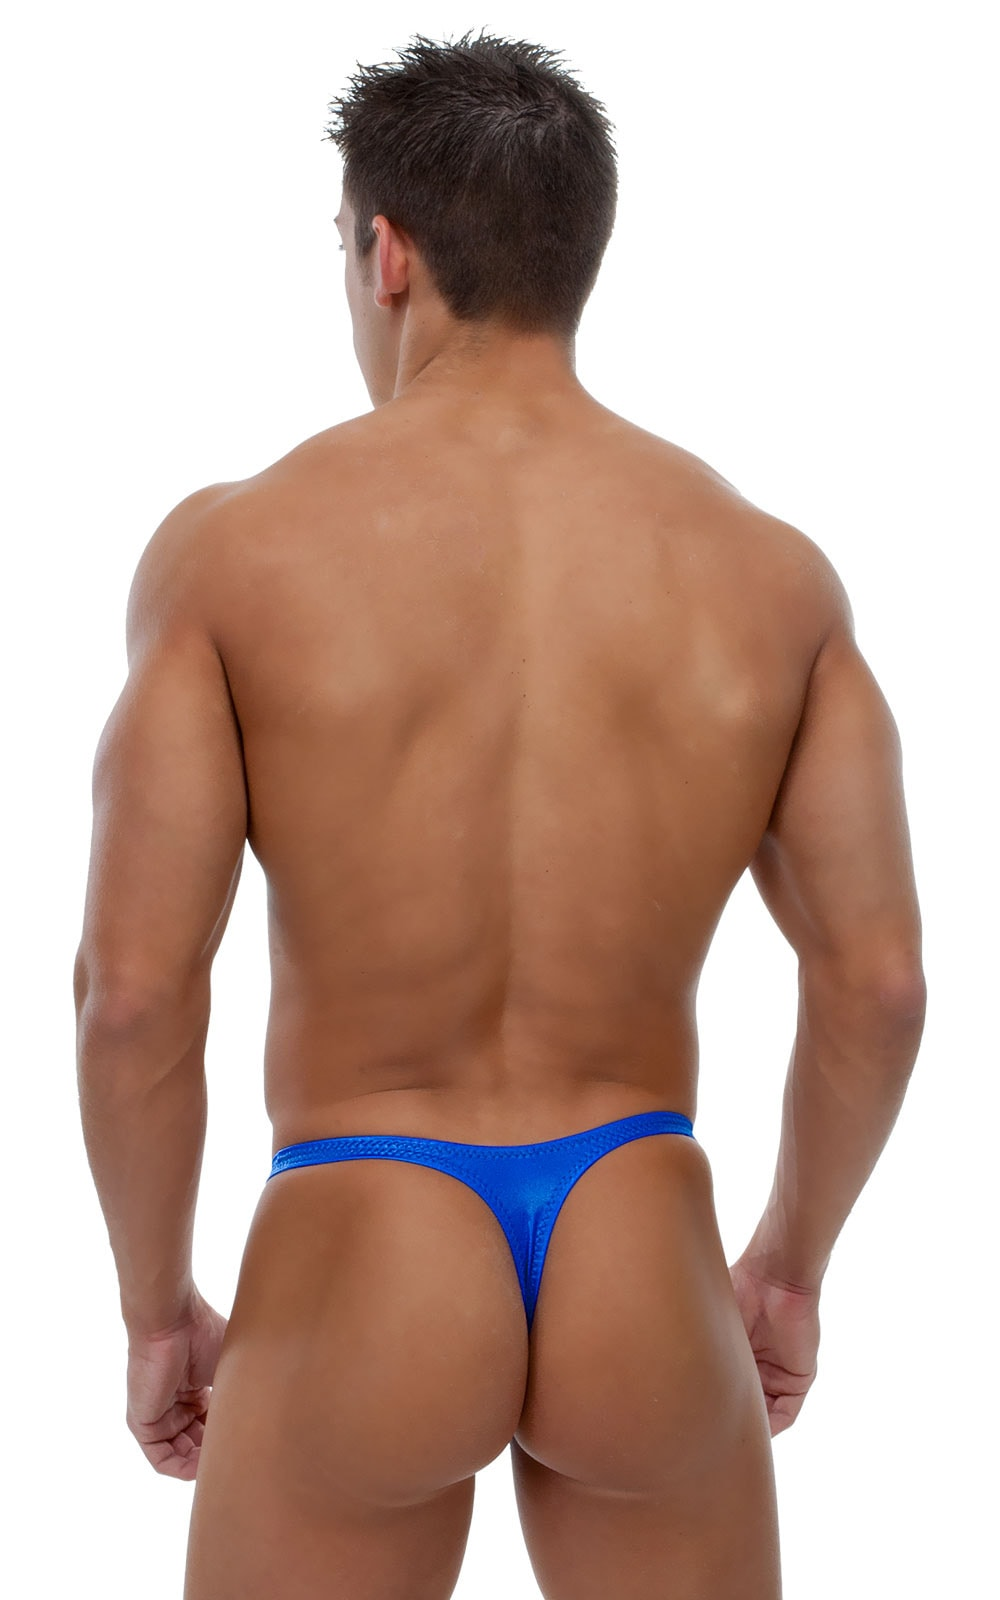 Swimsuit Thong with Pouch Enhancement in Wet Look Royal Blue 3